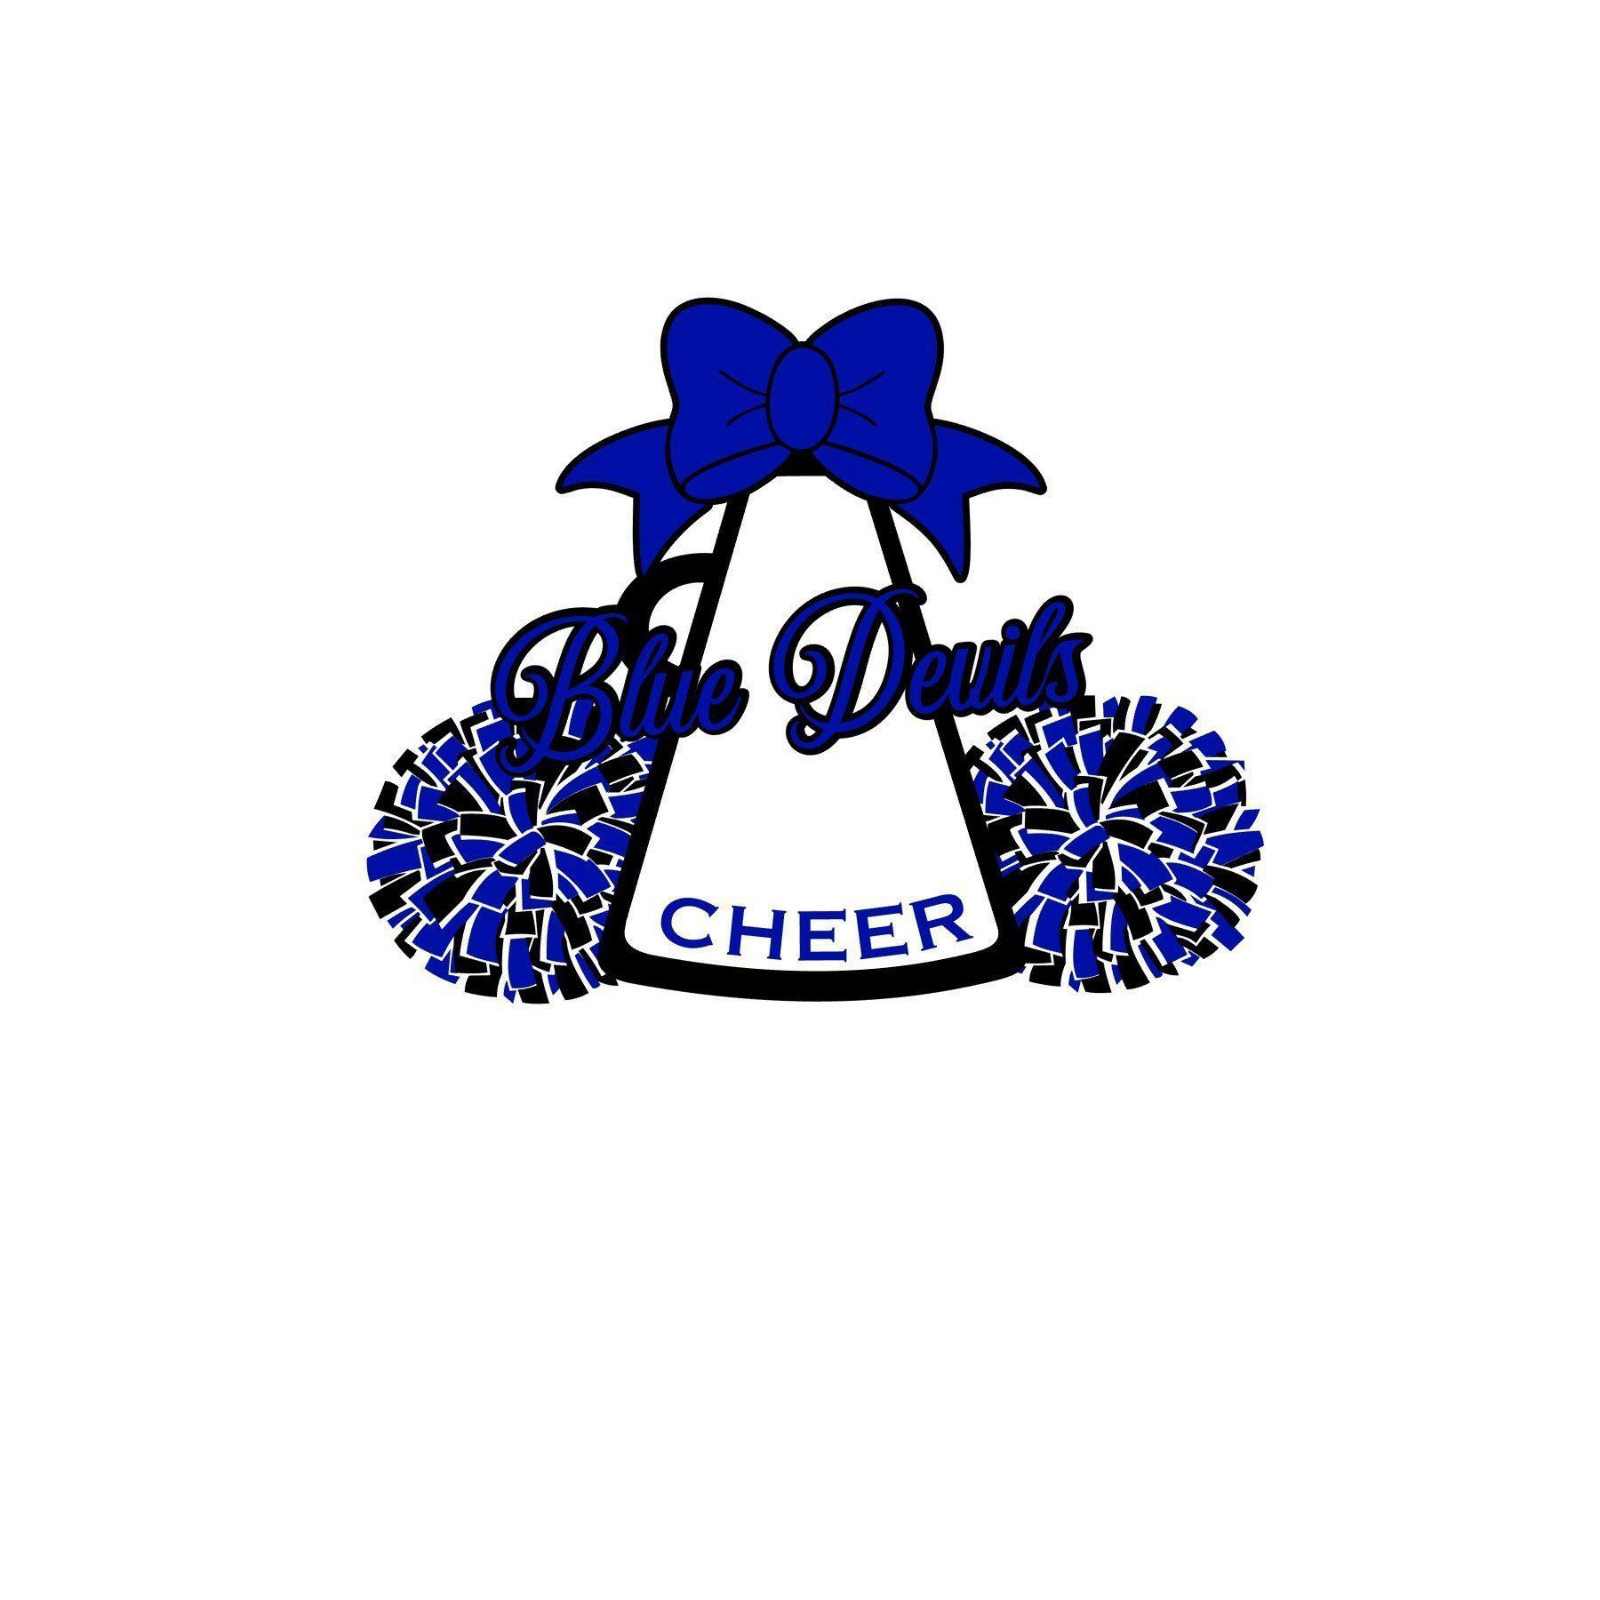 2019-20 MHS Cheer Results